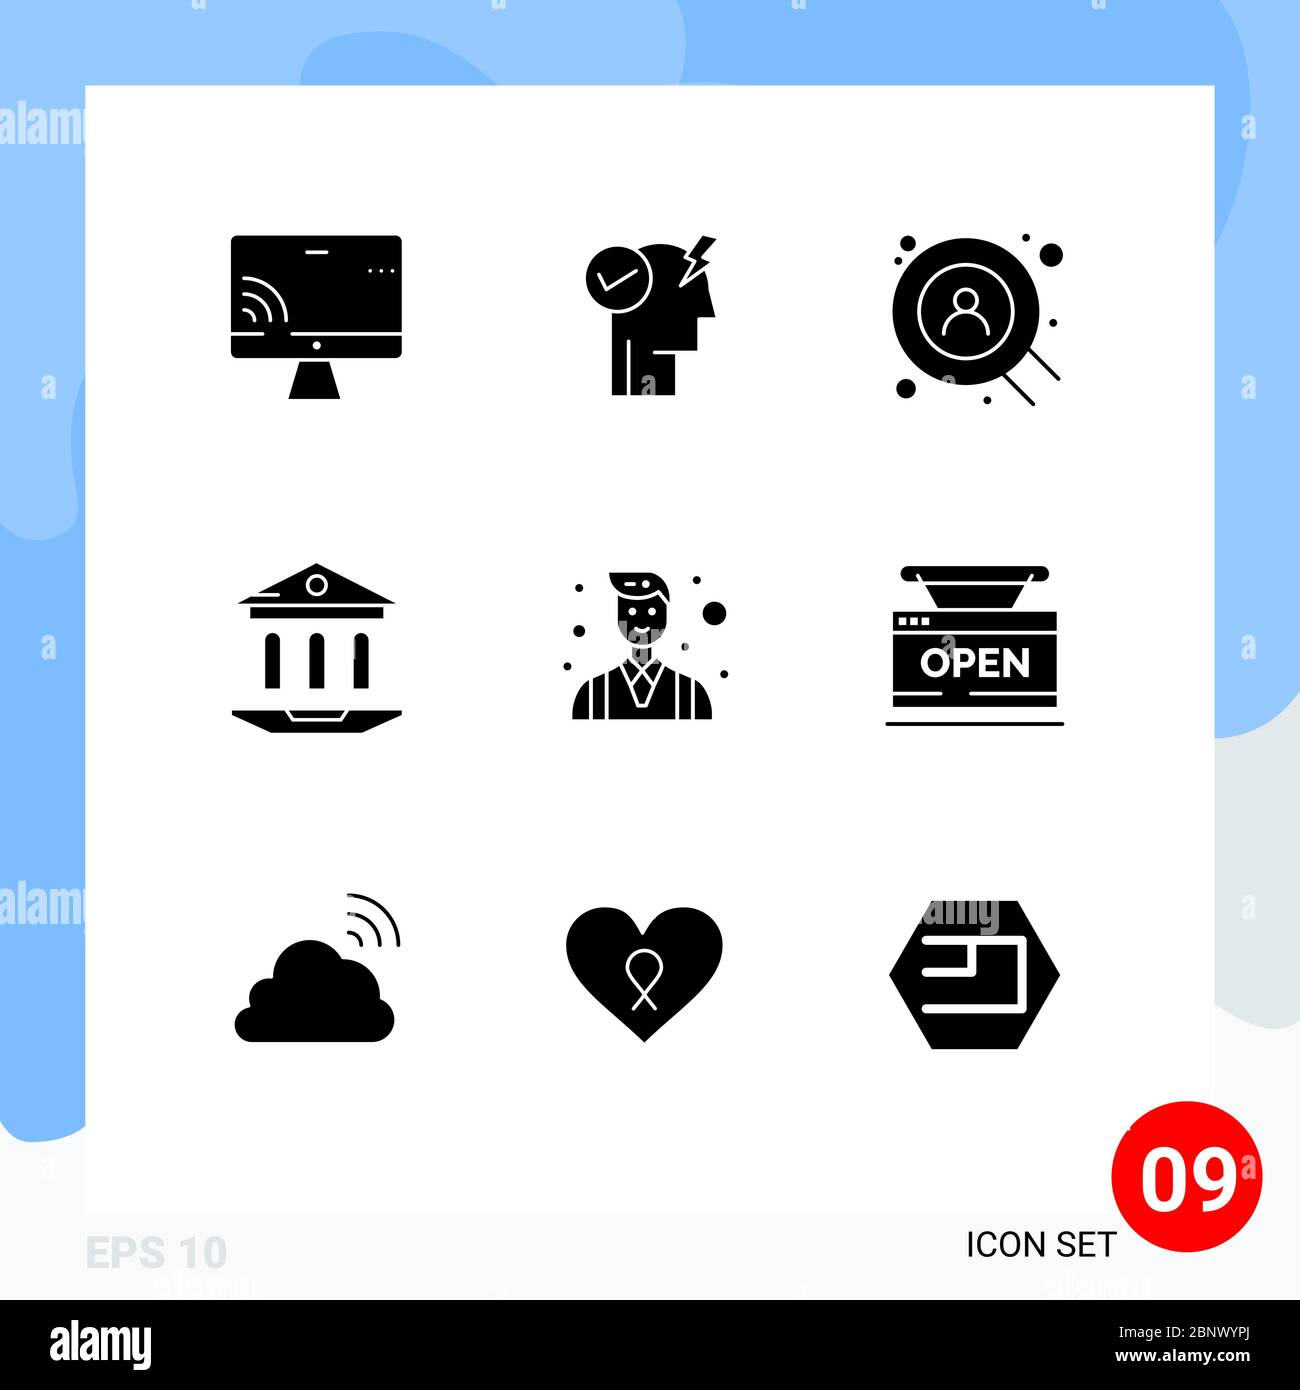 Set Of 9 Modern Ui Icons Symbols Signs For Entrepreneur Boss Web Education School Editable Vector Design Elements Stock Vector Image Art Alamy Bossweb.com is tracked by us since november, 2014. alamy